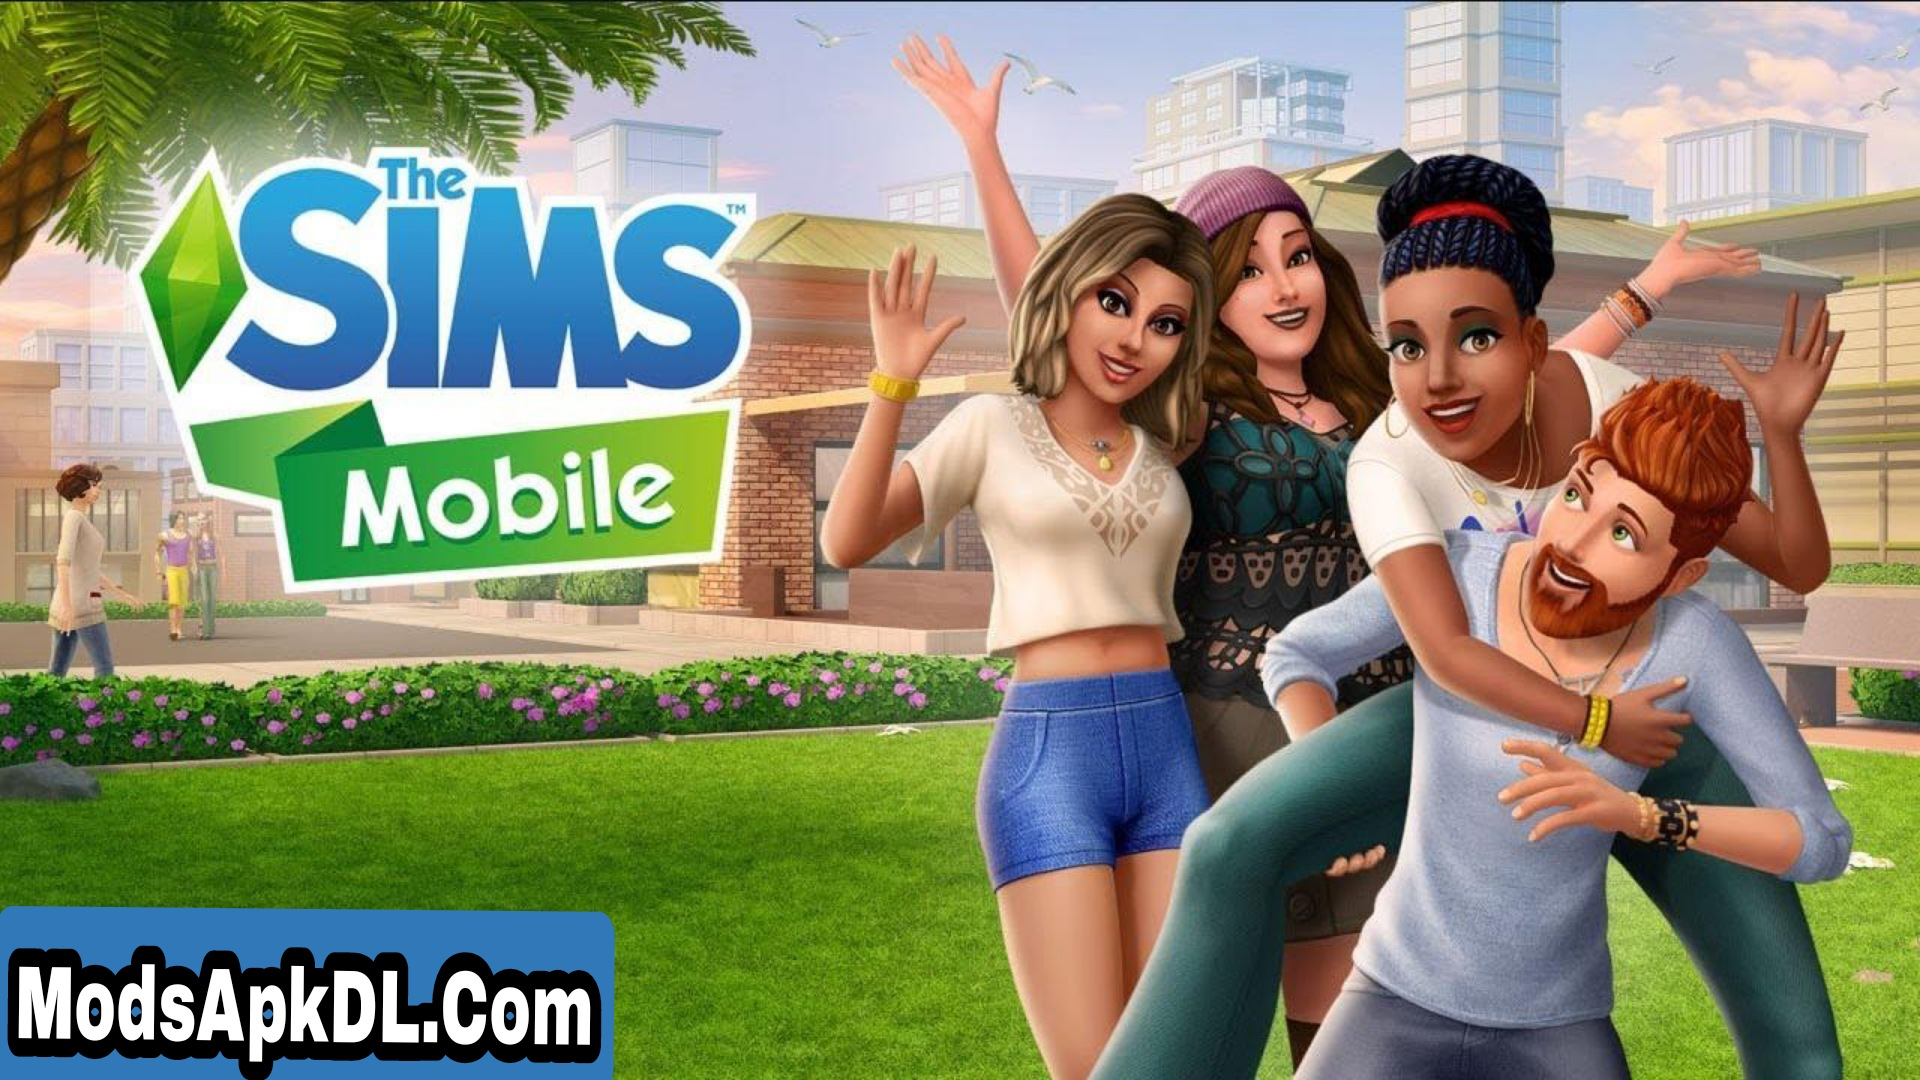 The Sims Mobile MOD APK v27.0.1.118643 (Unlimited Money)